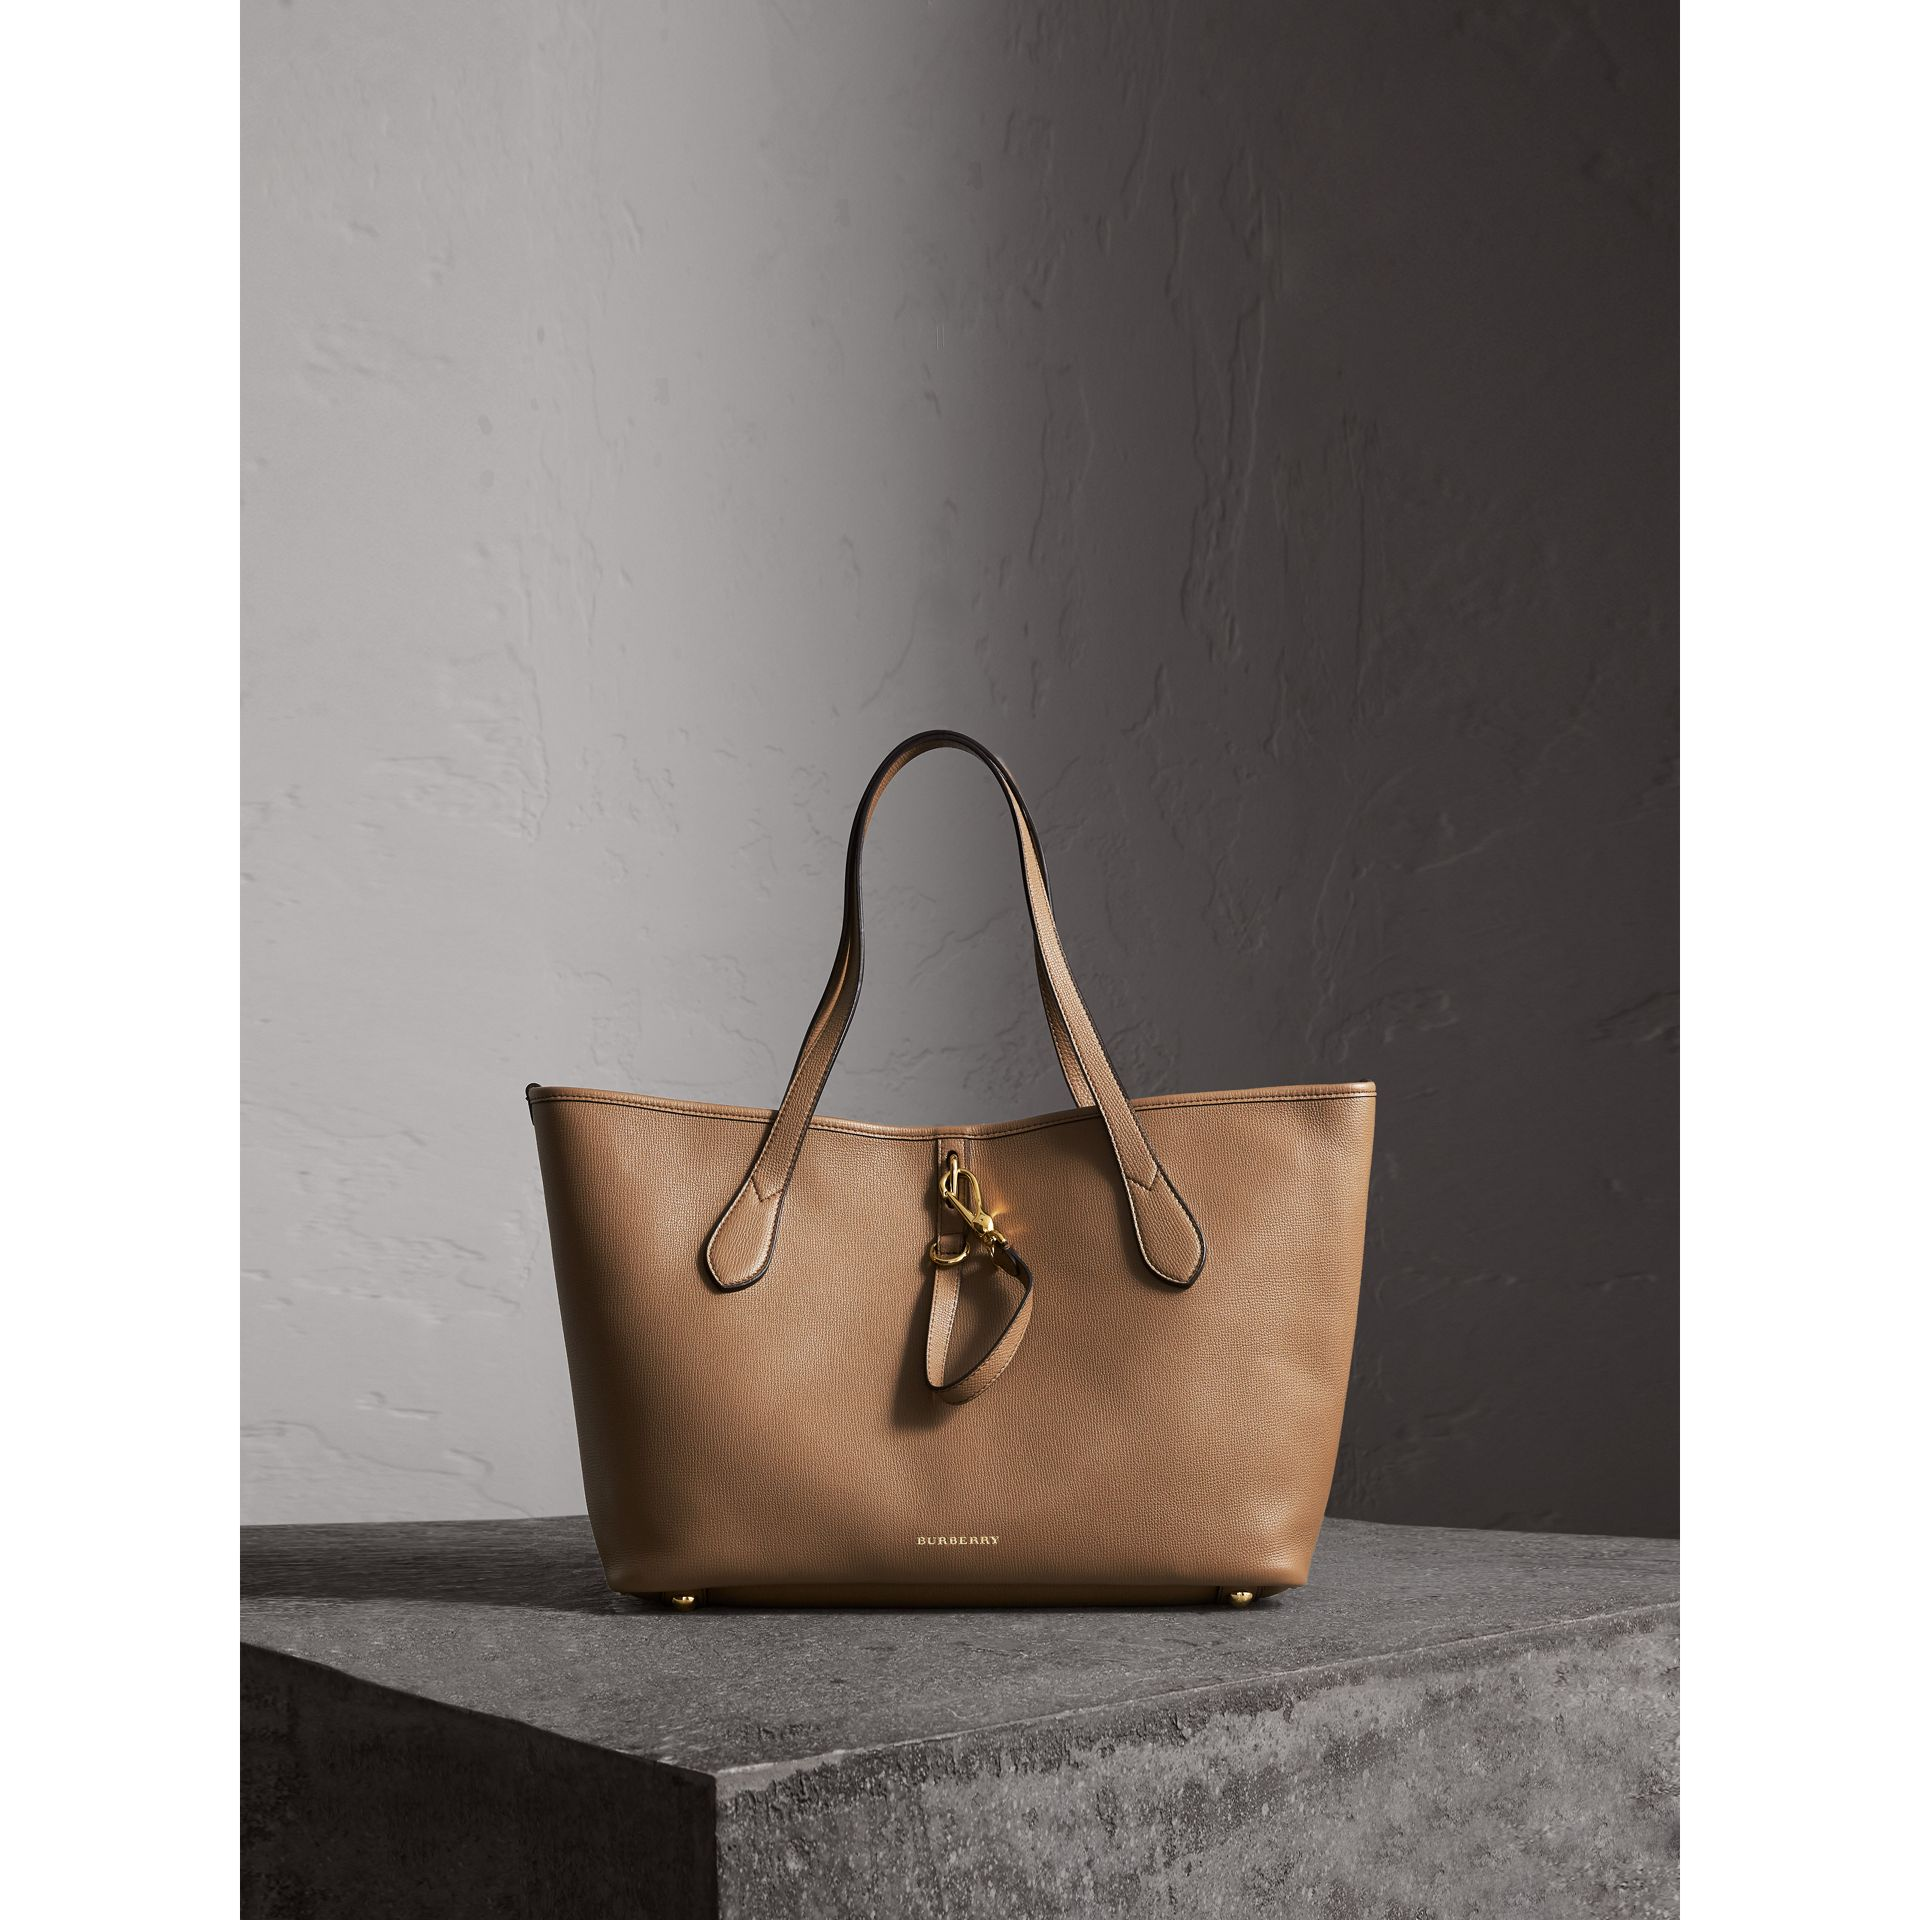 Medium Grainy Leather Tote Bag in Dark Sand - Women | Burberry United States - gallery image 1